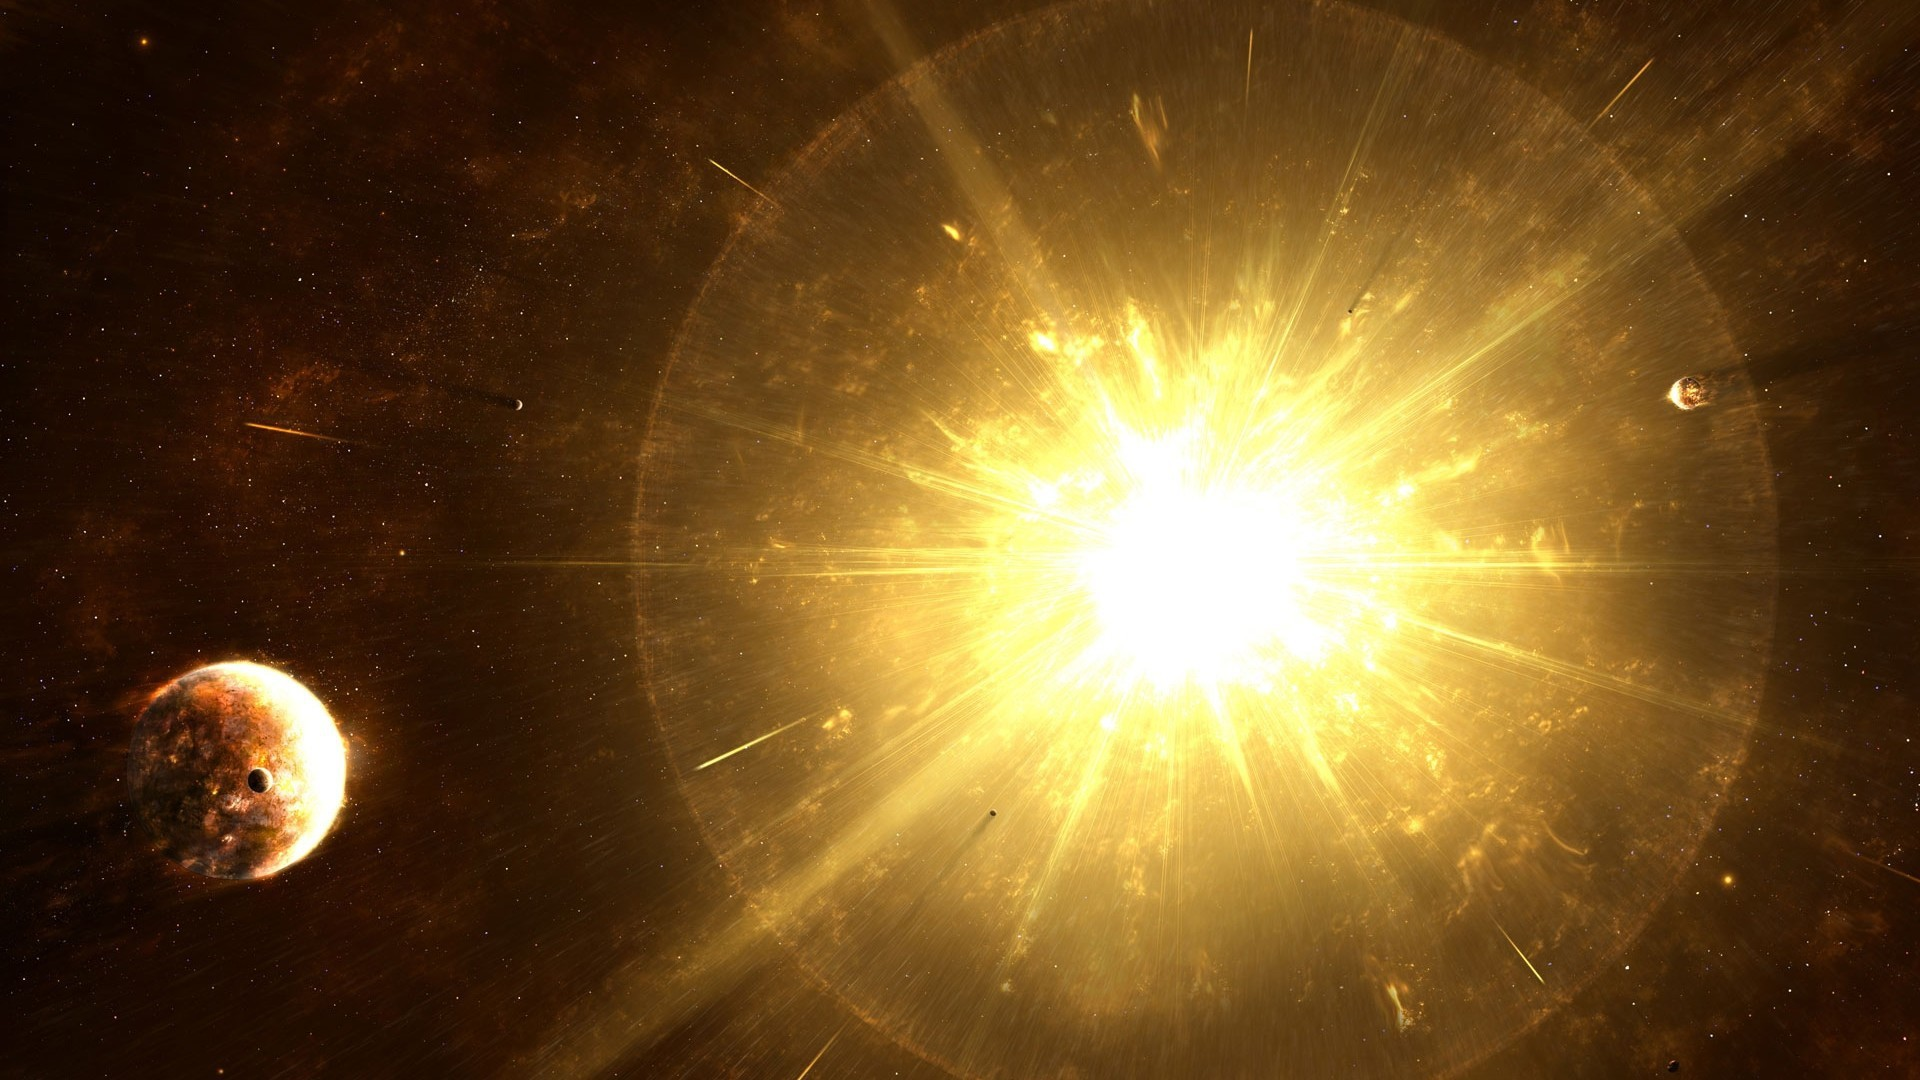 Sun outer space stars explosions planets last supernova wallpaper